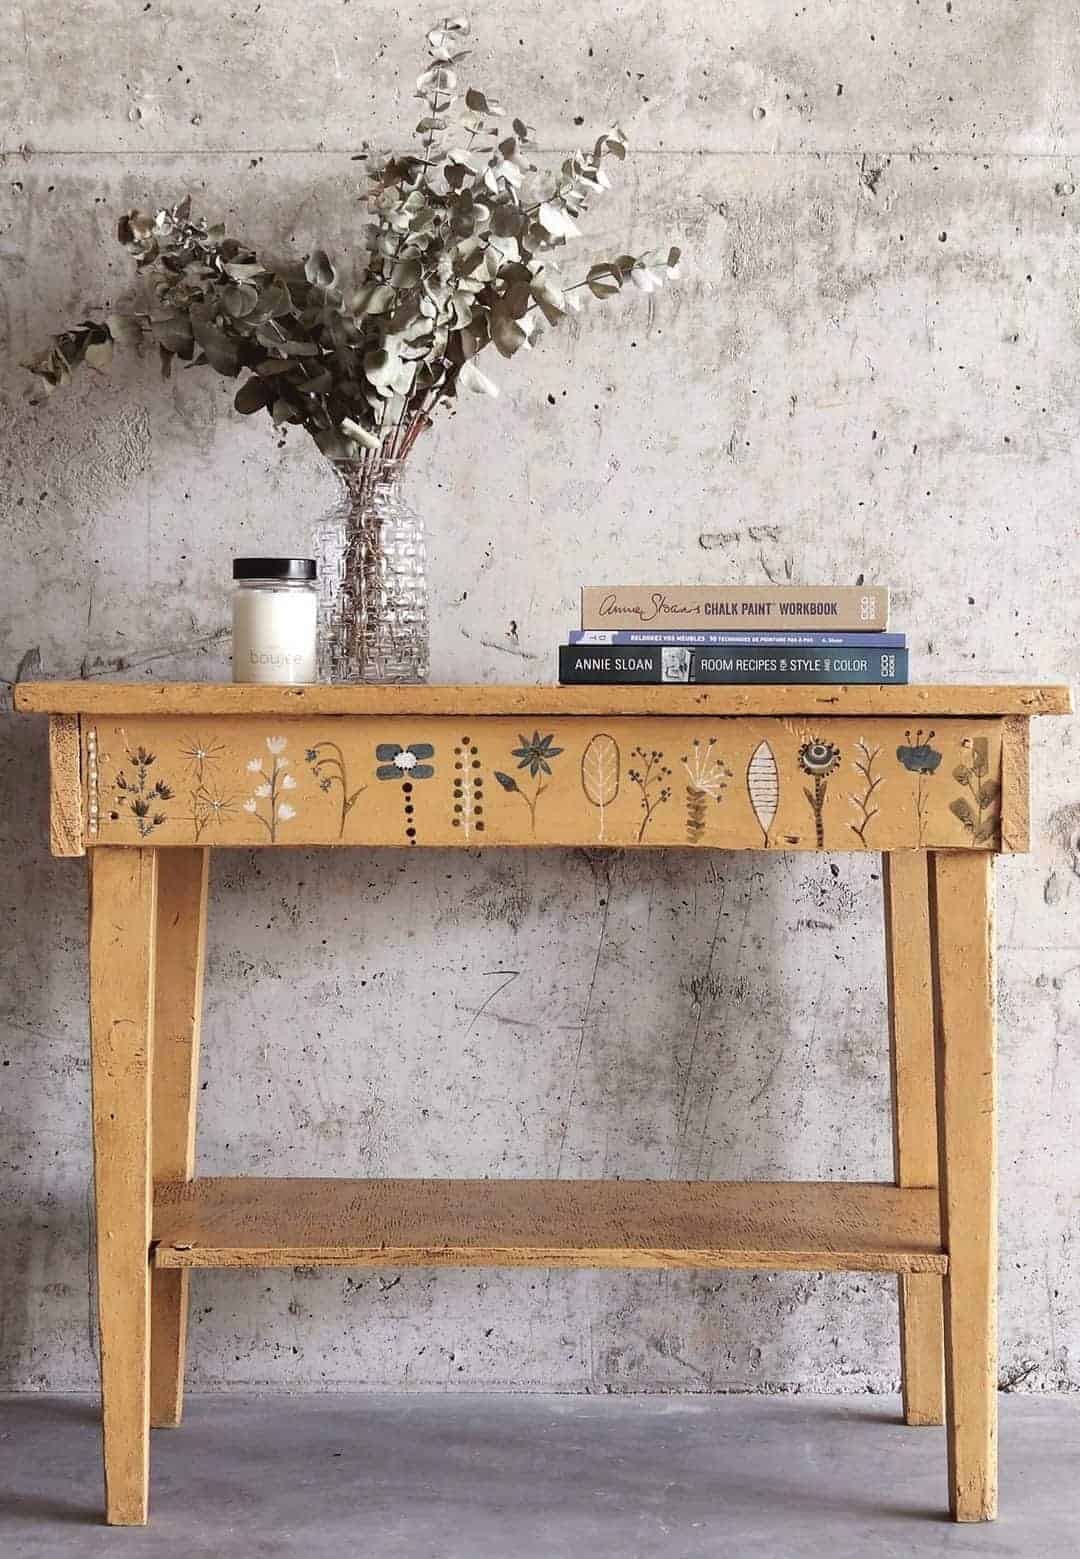 love this annie sloan chalk paint rustic painted console table with decorative stencilling. Click through to see more inspirational creative painted furniture ideas and DIY tutorial projects you'll love to try